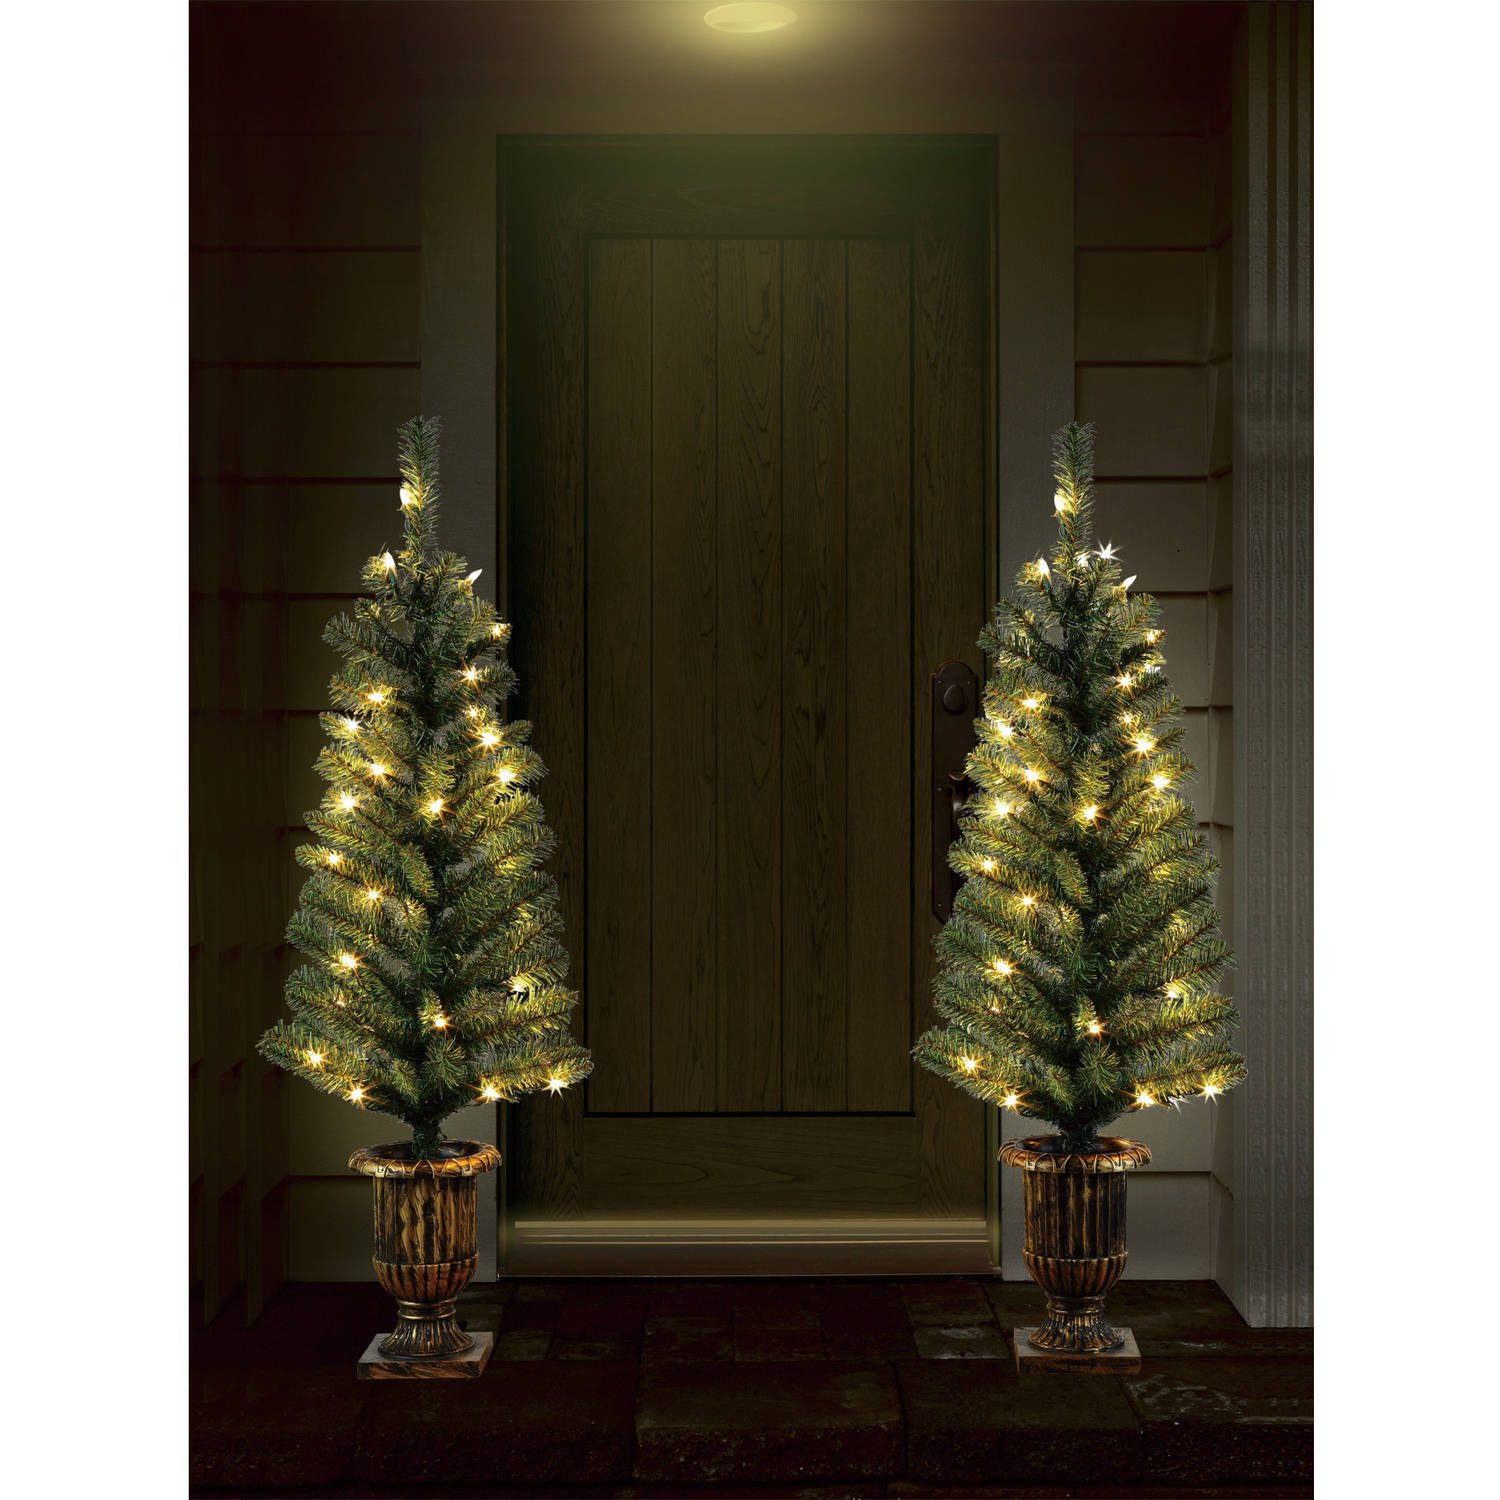 Holiday Time Christmas Decor Pre-Lit 2-Pack 3.5' Artificial Porch Tree, Clear Lights